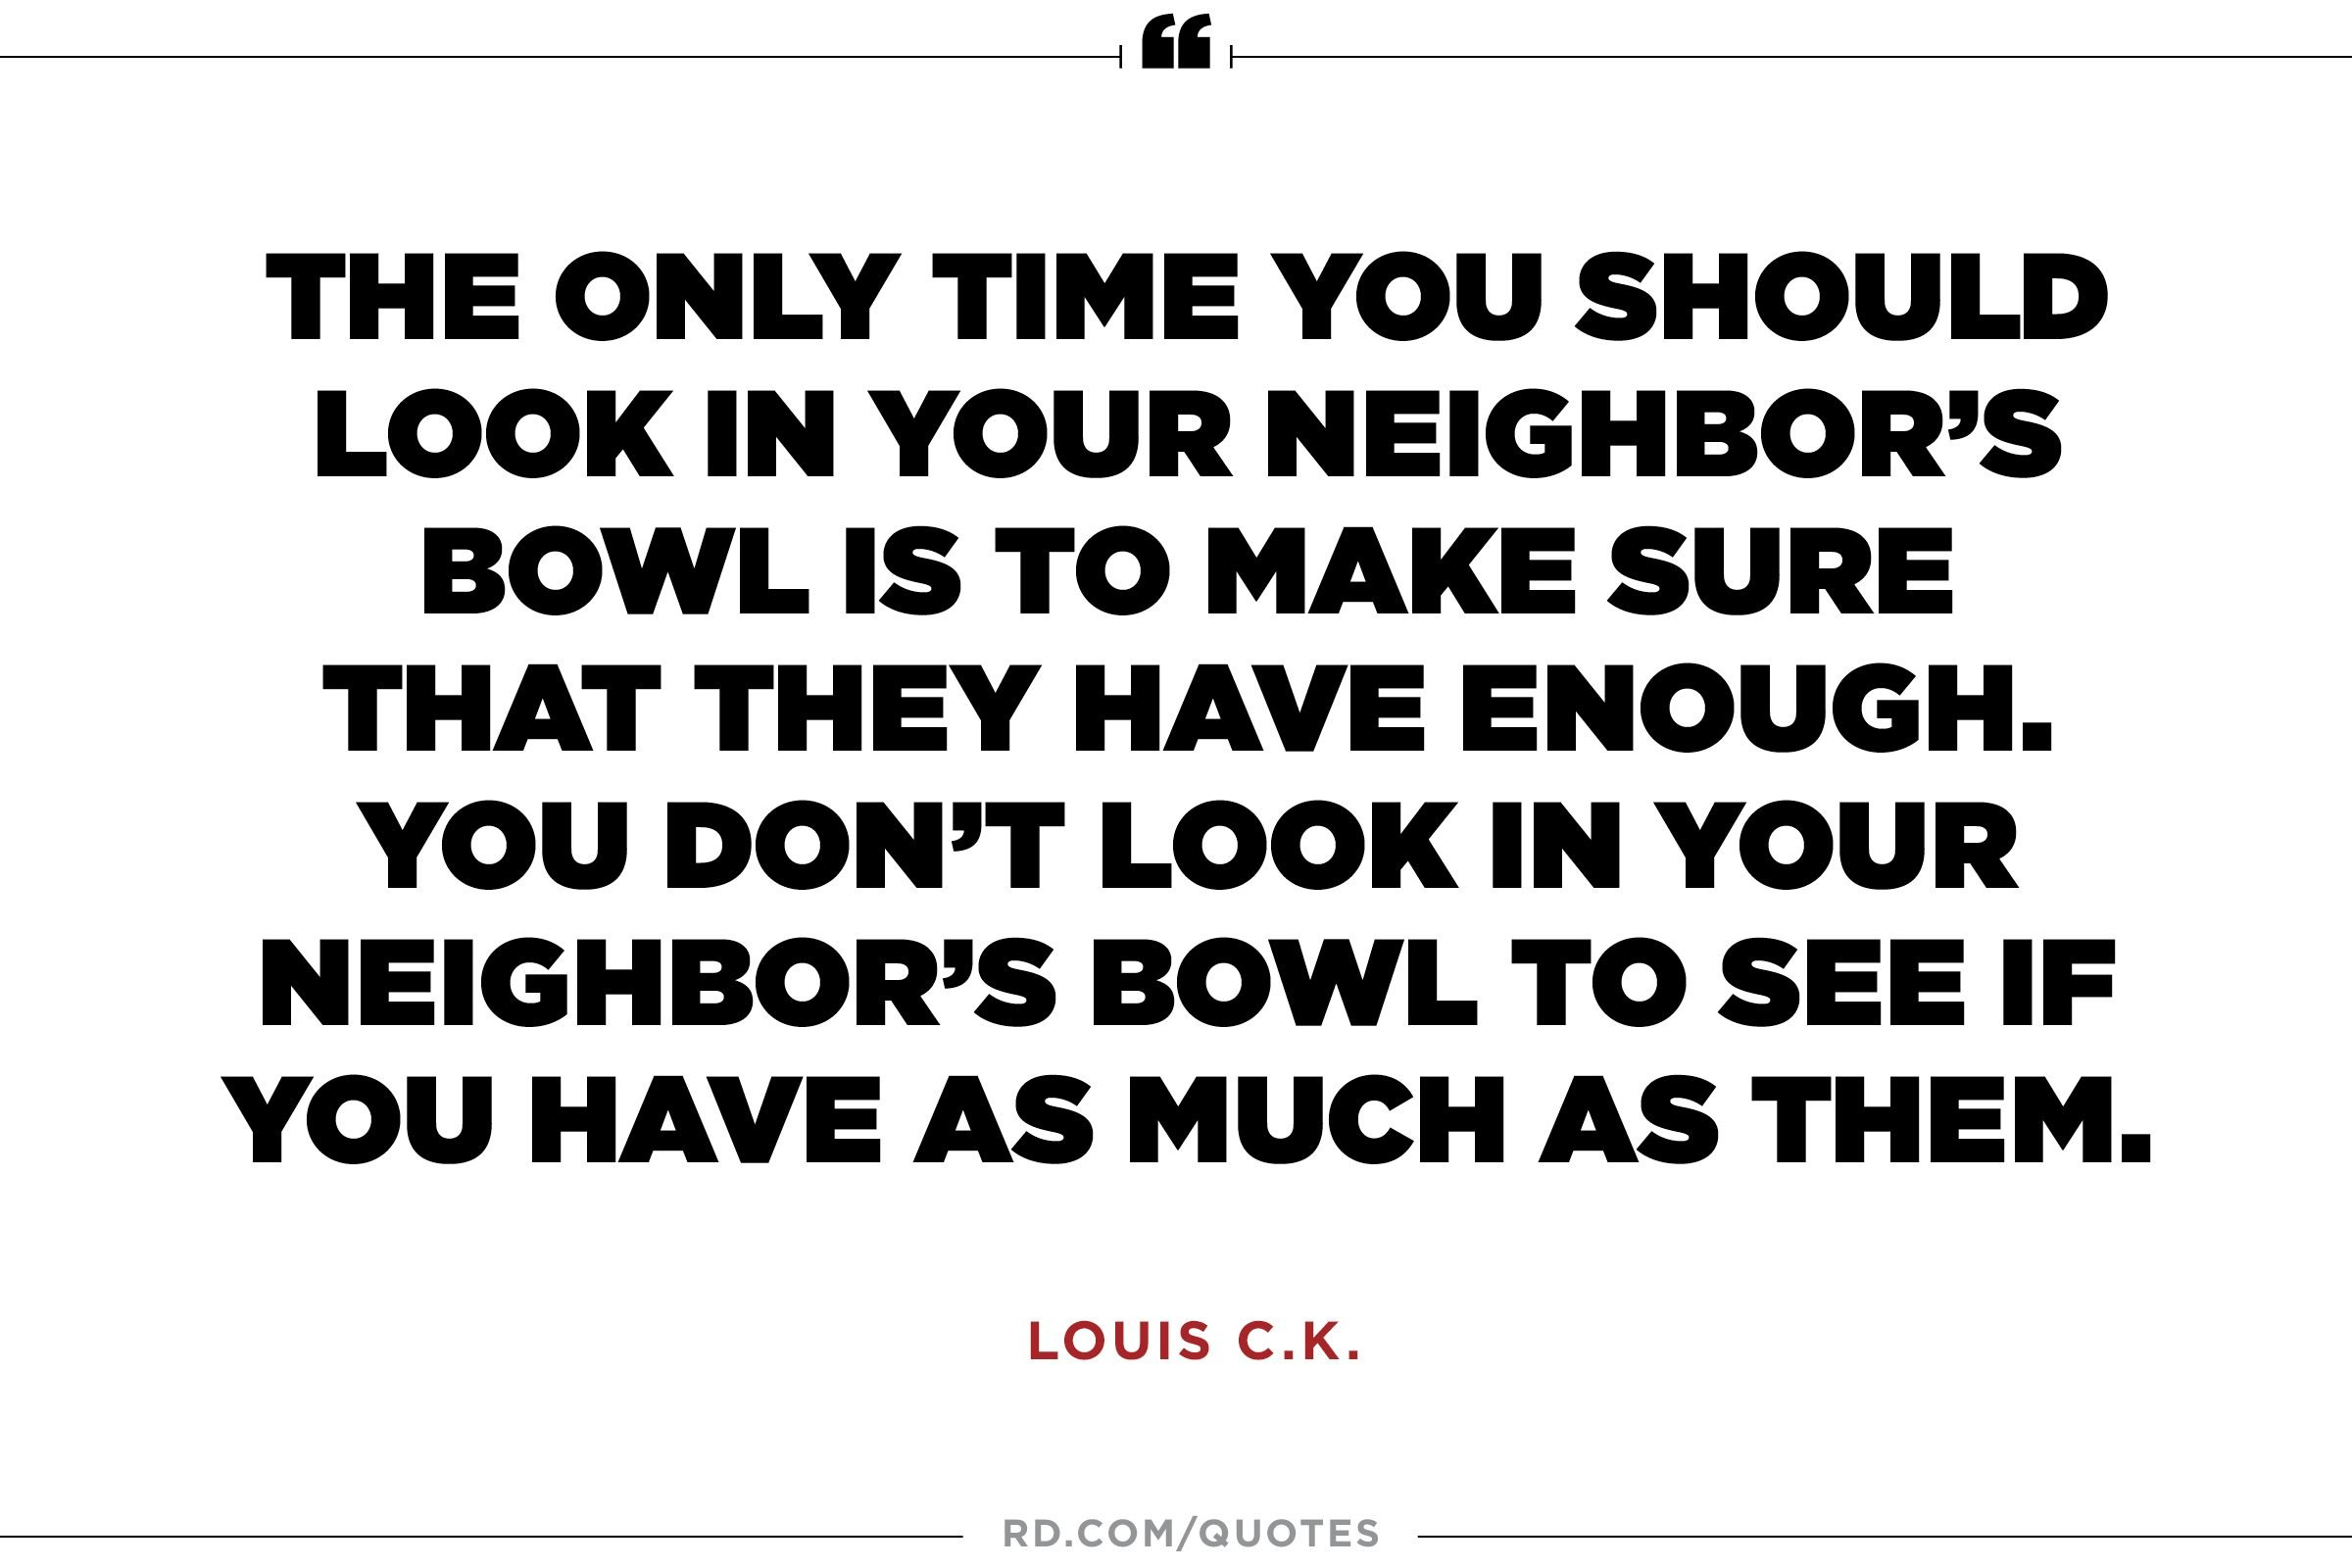 How To Make A Quote 5 Louis C.kquotes That Tell It Like It Is  Reader's Digest